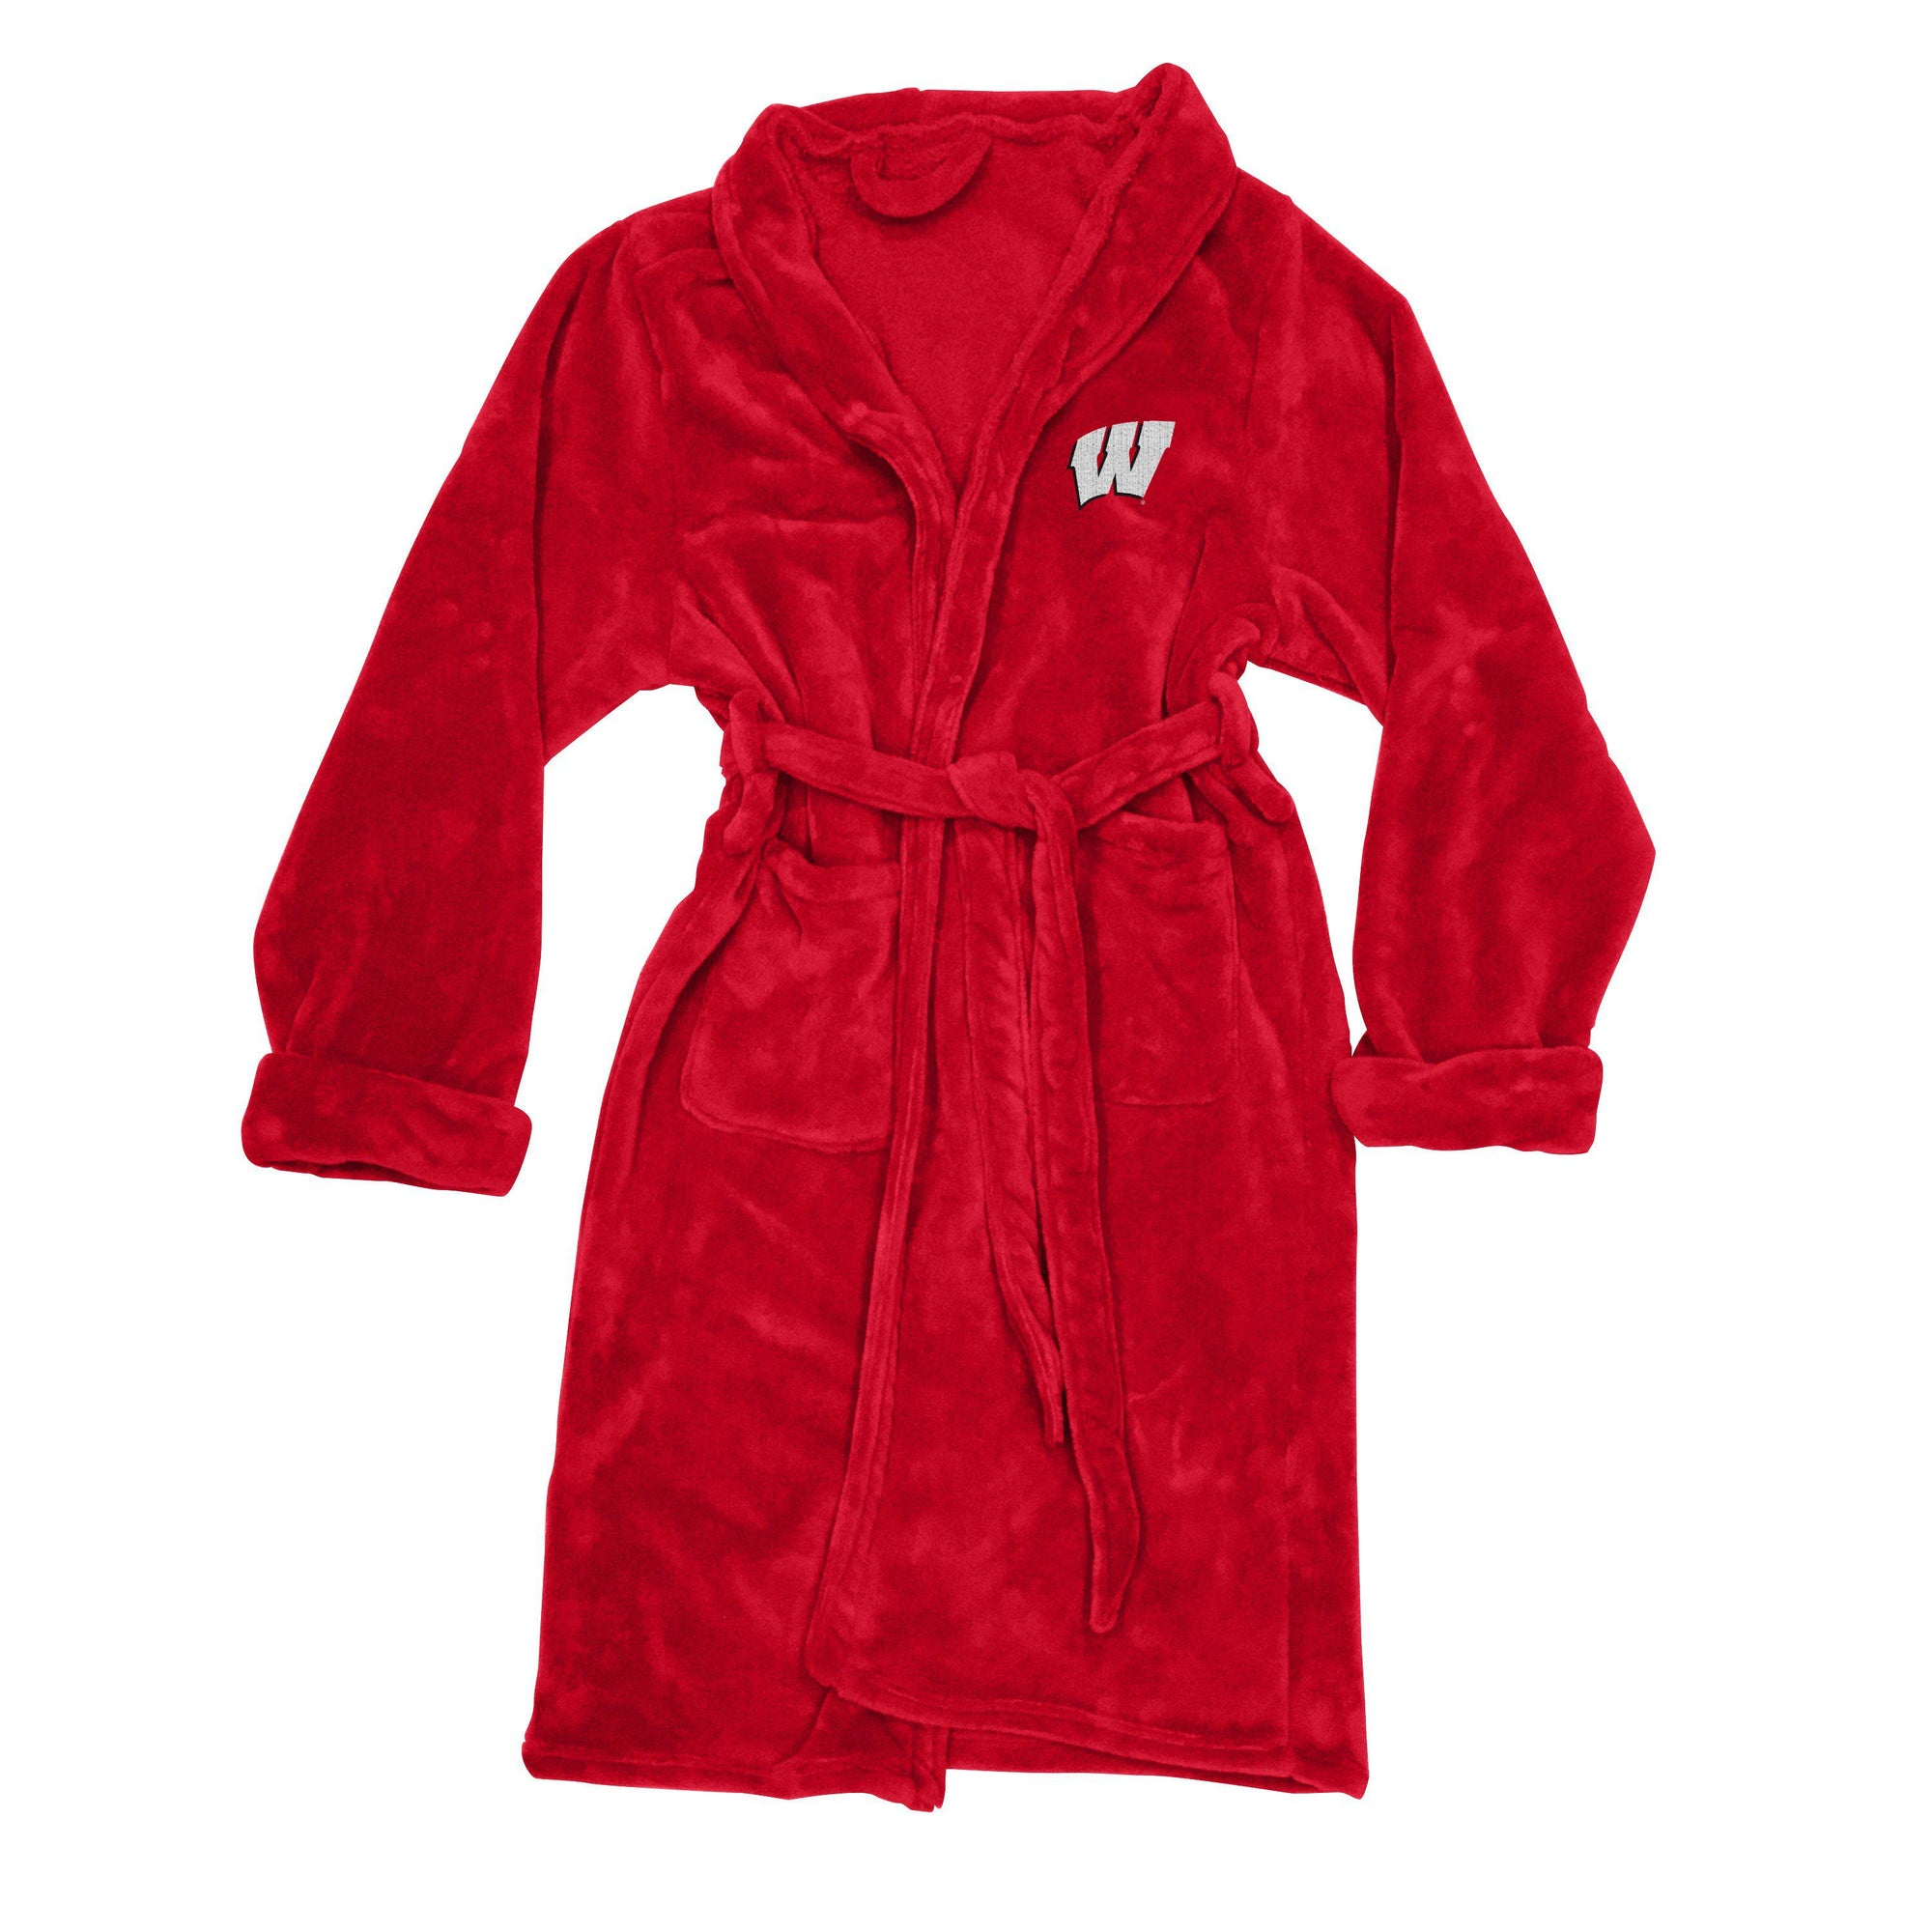 Wisconsin Badgers Men's Silk Touch Plush Bath Robe-Bathrobe-Northwest-Top Notch Gift Shop